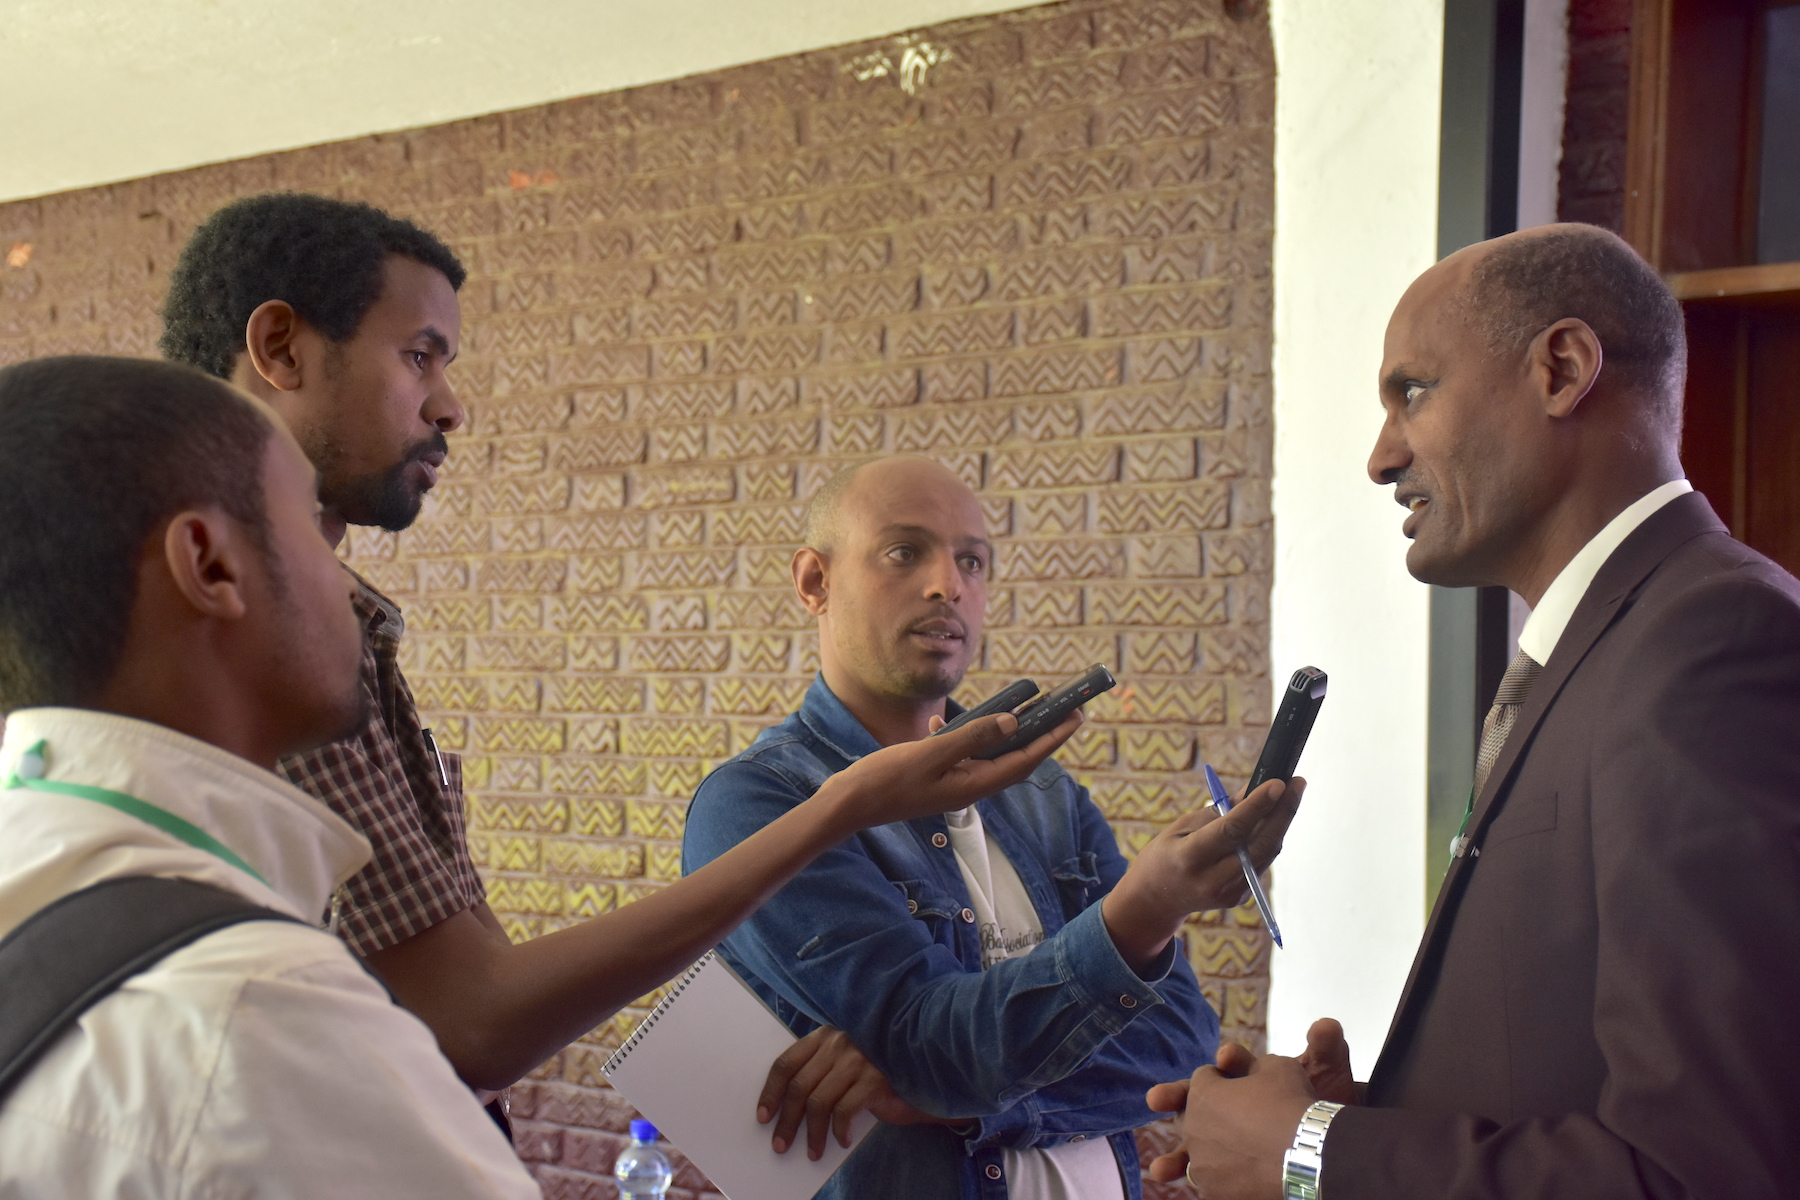 CIMMYT's representative in Ethiopia, Bekele Abeyo, gives an interview for Ethiopian media. (Photo: Jérôme Bossuet/CIMMYT)